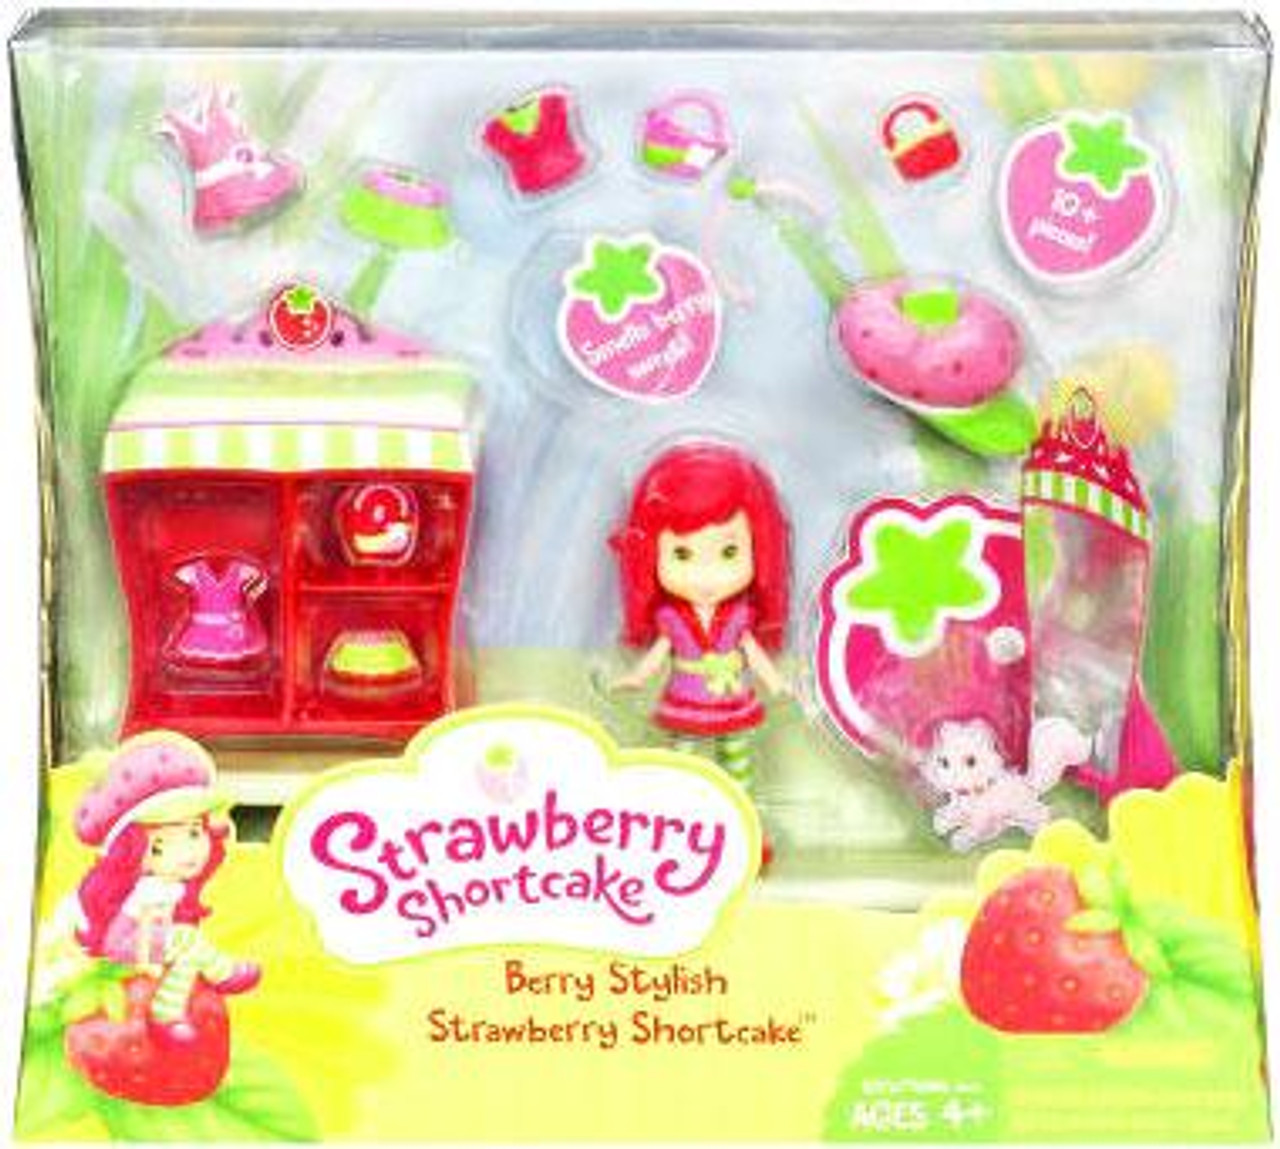 Berry Stylish Strawberry Shortcake Playset